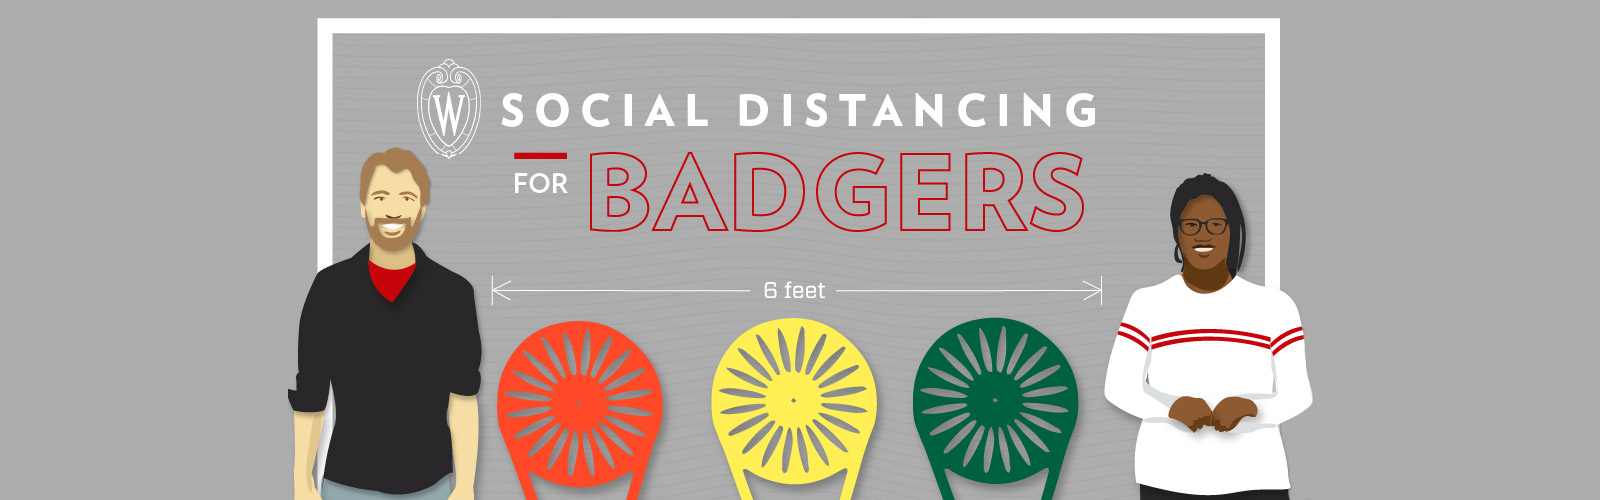 Social Distancing for Badgers: Stay six feet apart, or three terrace chairs.